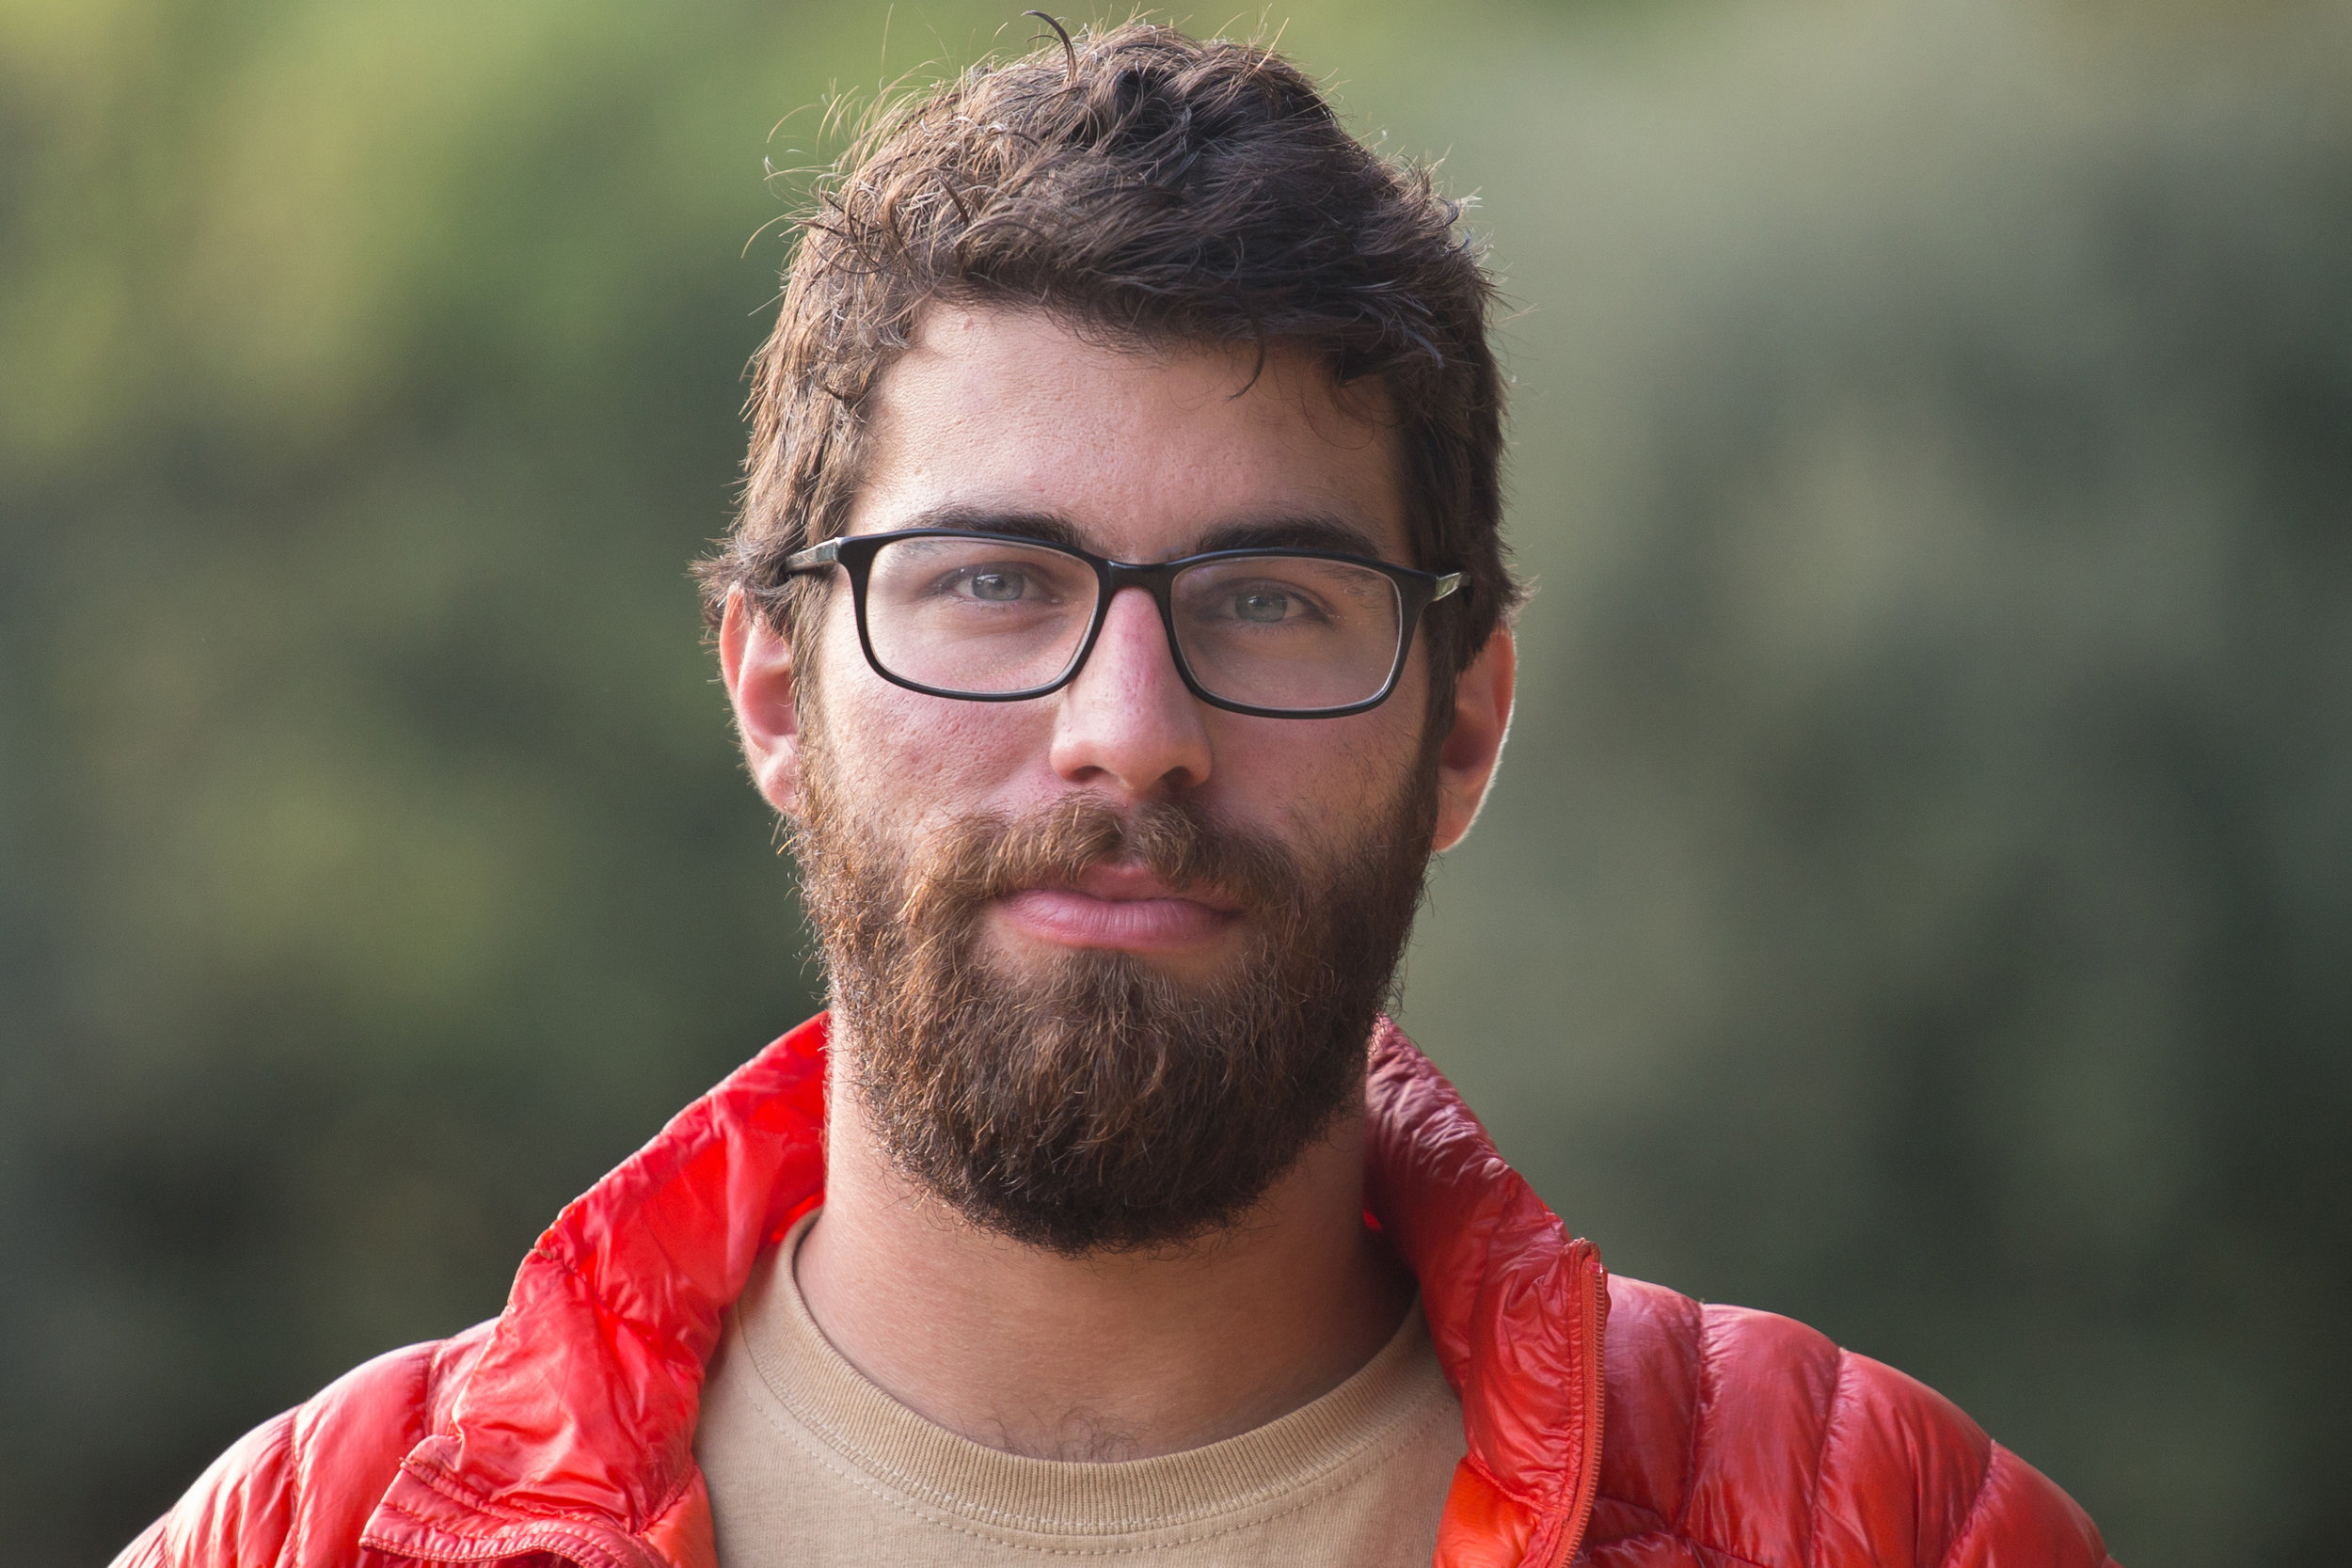 Austin Graham - Being the project's director of media, Austin will be in control of creating shot lists, editing clips for sponsors and ultimately molding what the film will become.Co-Owner of Adventureitus